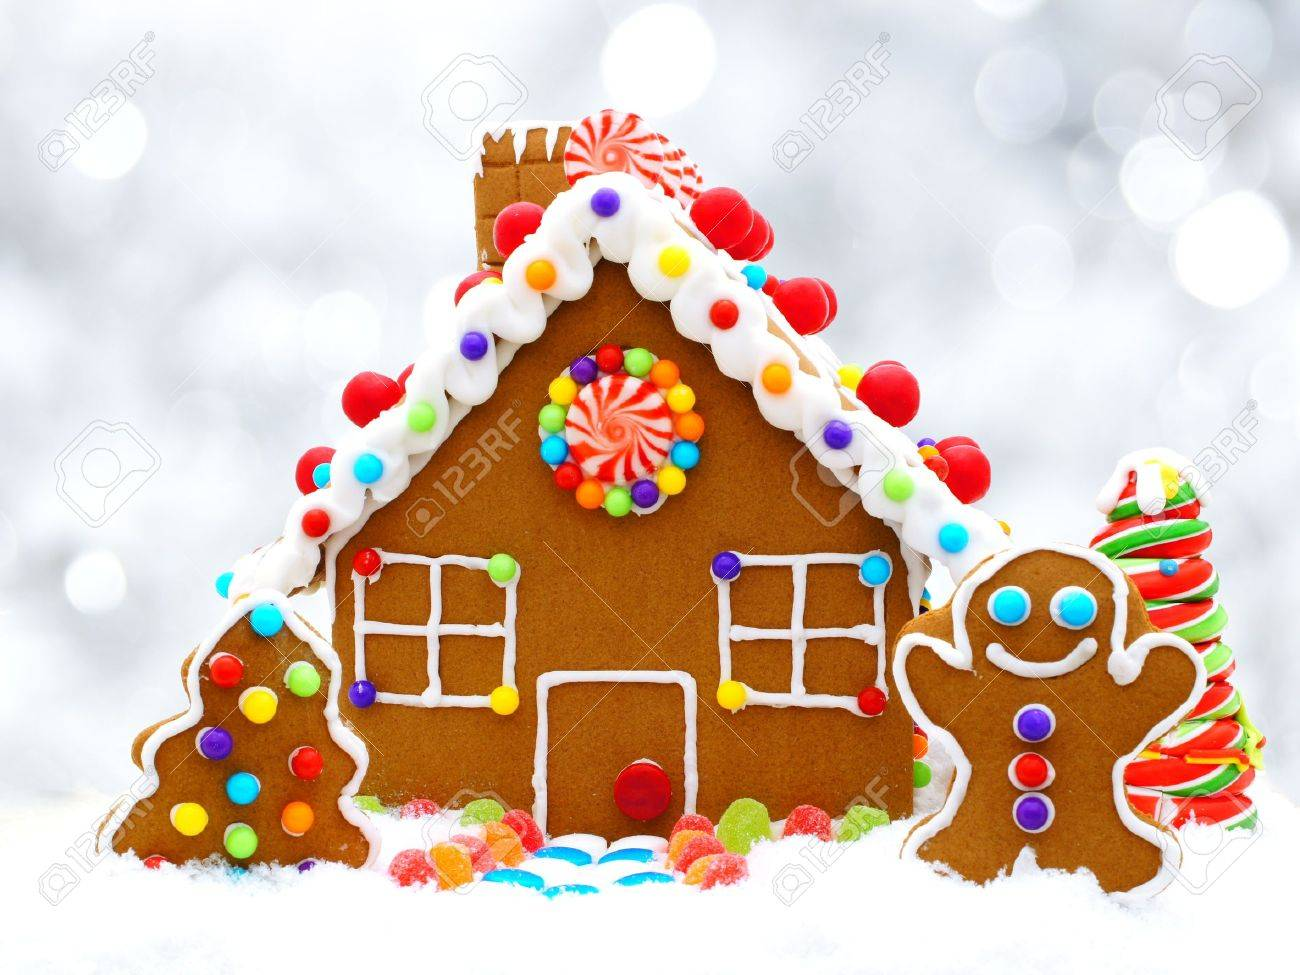 Christmas Gingerbread House Background.Christmas Gingerbread House With Twinkling Silver Light Background